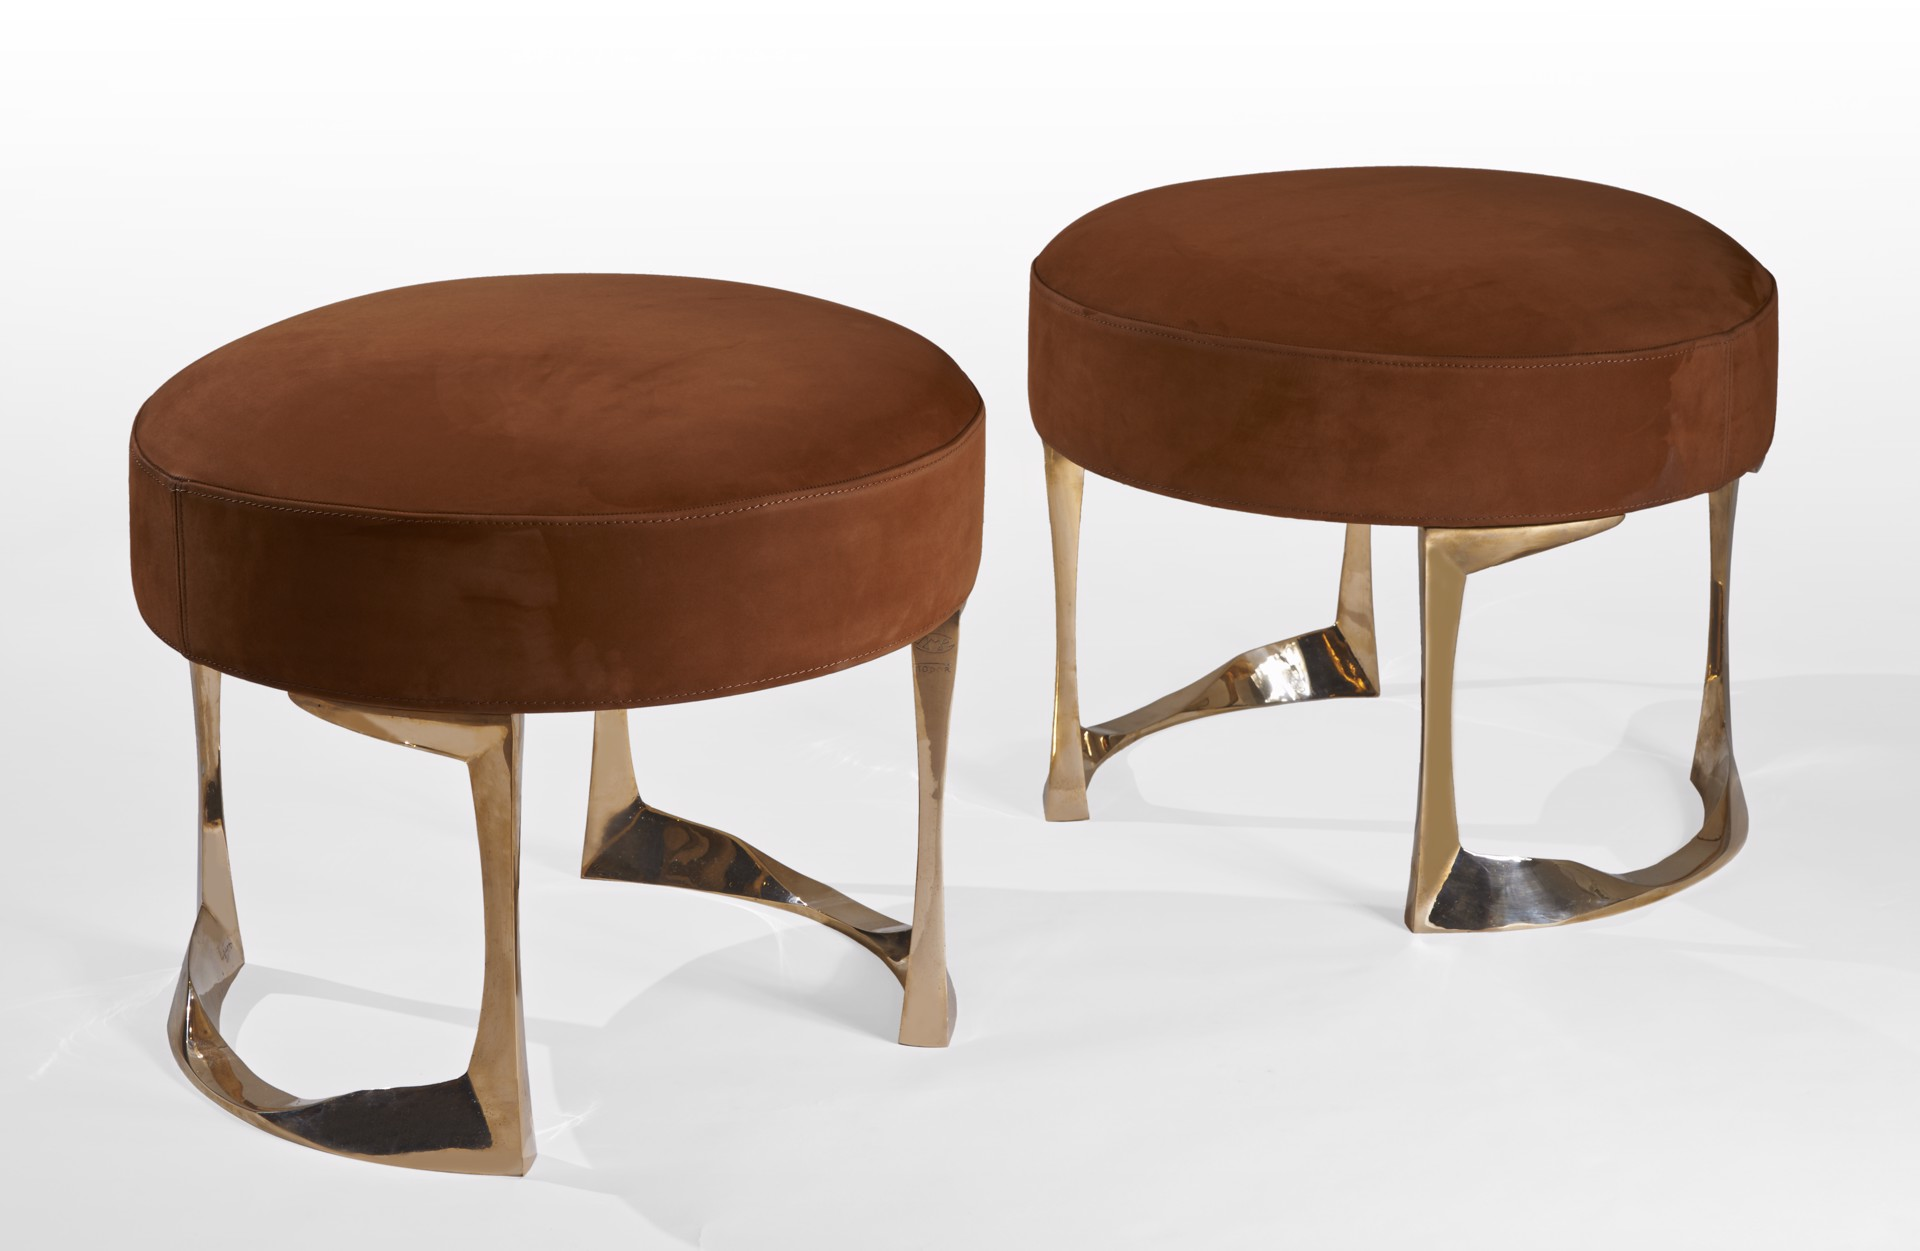 """Pouf"" stool by Anasthasia Millot"